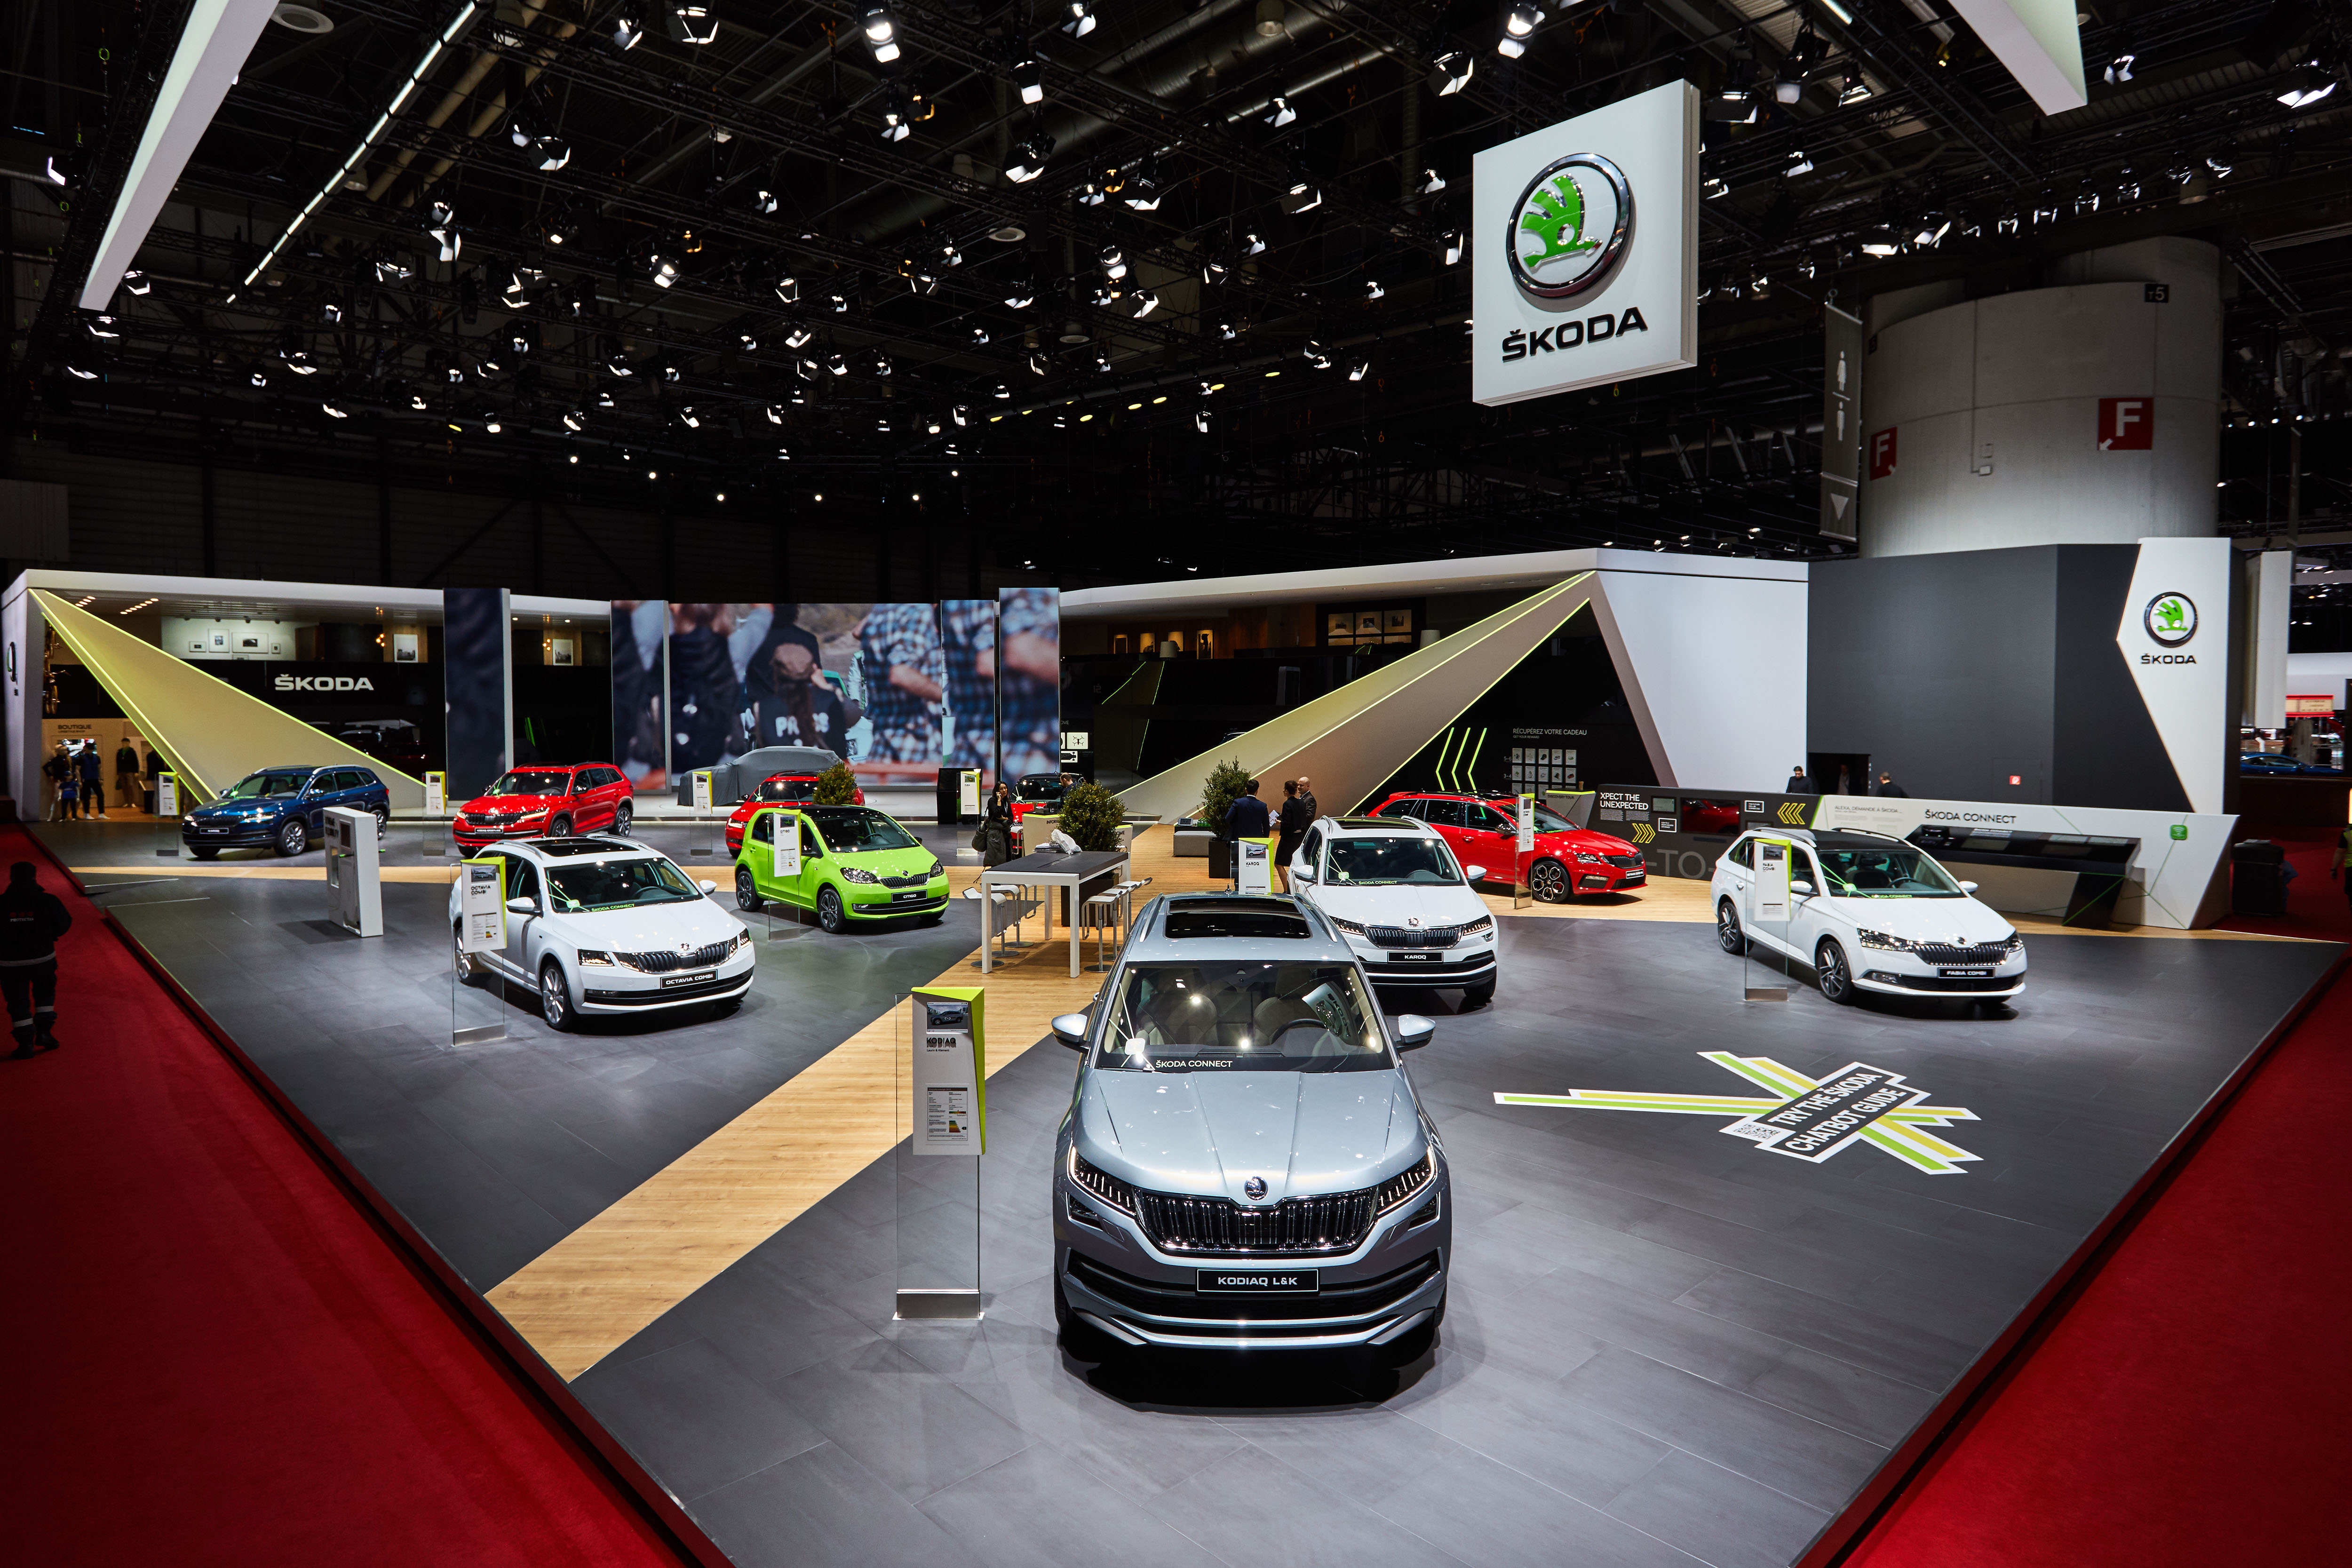 Geneva Motor Show ŠKODA AUTOs Presentation In Pictures - Geneva car show